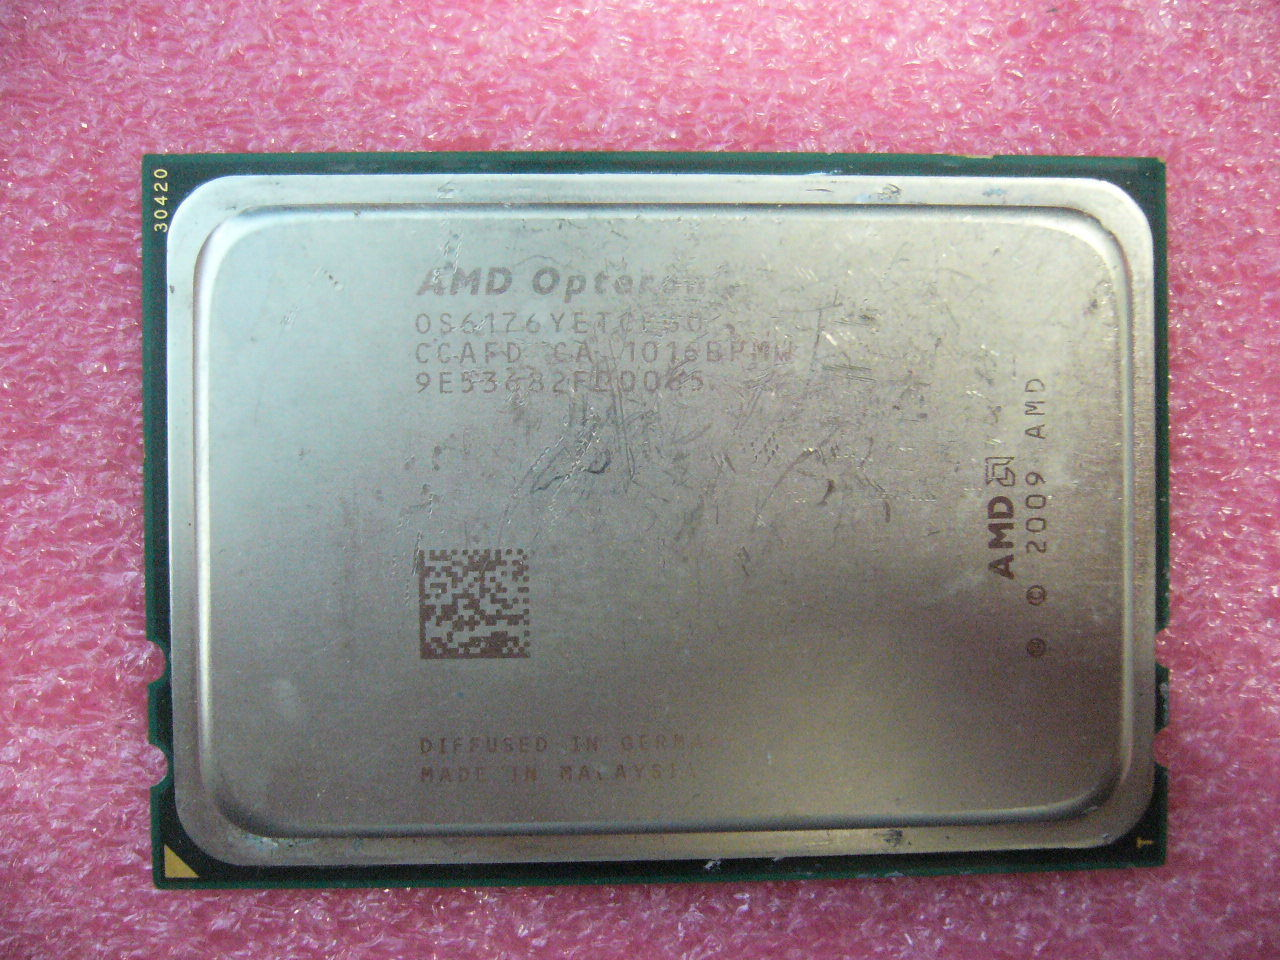 QTY 1x AMD Opteron 6176 SE 2.3 GHz Twelve Core (OS6176YETCEGO) CPU Tested G34